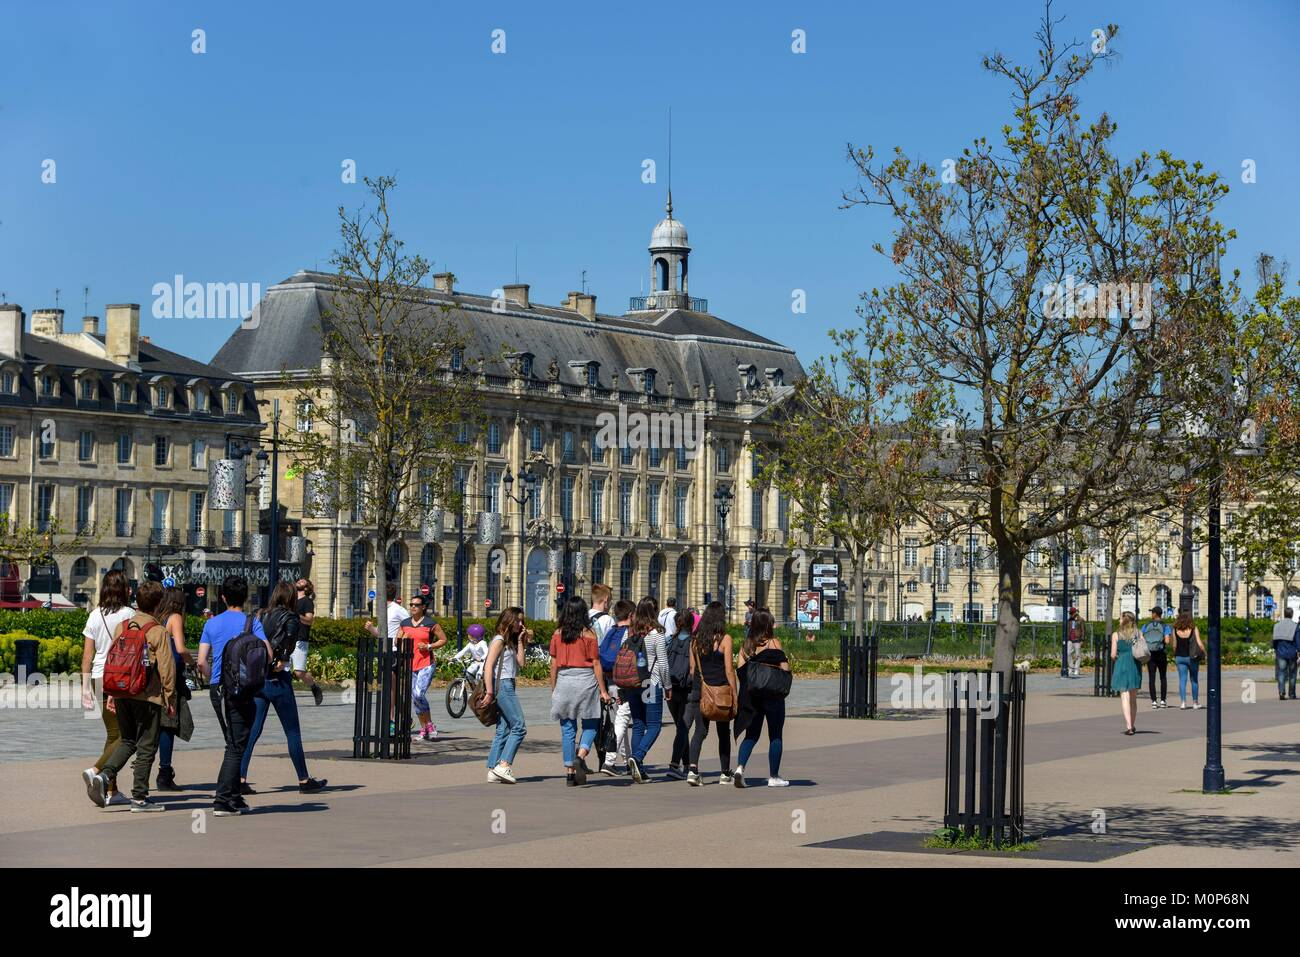 France,Gironde,Bordeaux,Quay of the Douanes,walkers on a pedestrian path - Stock Image